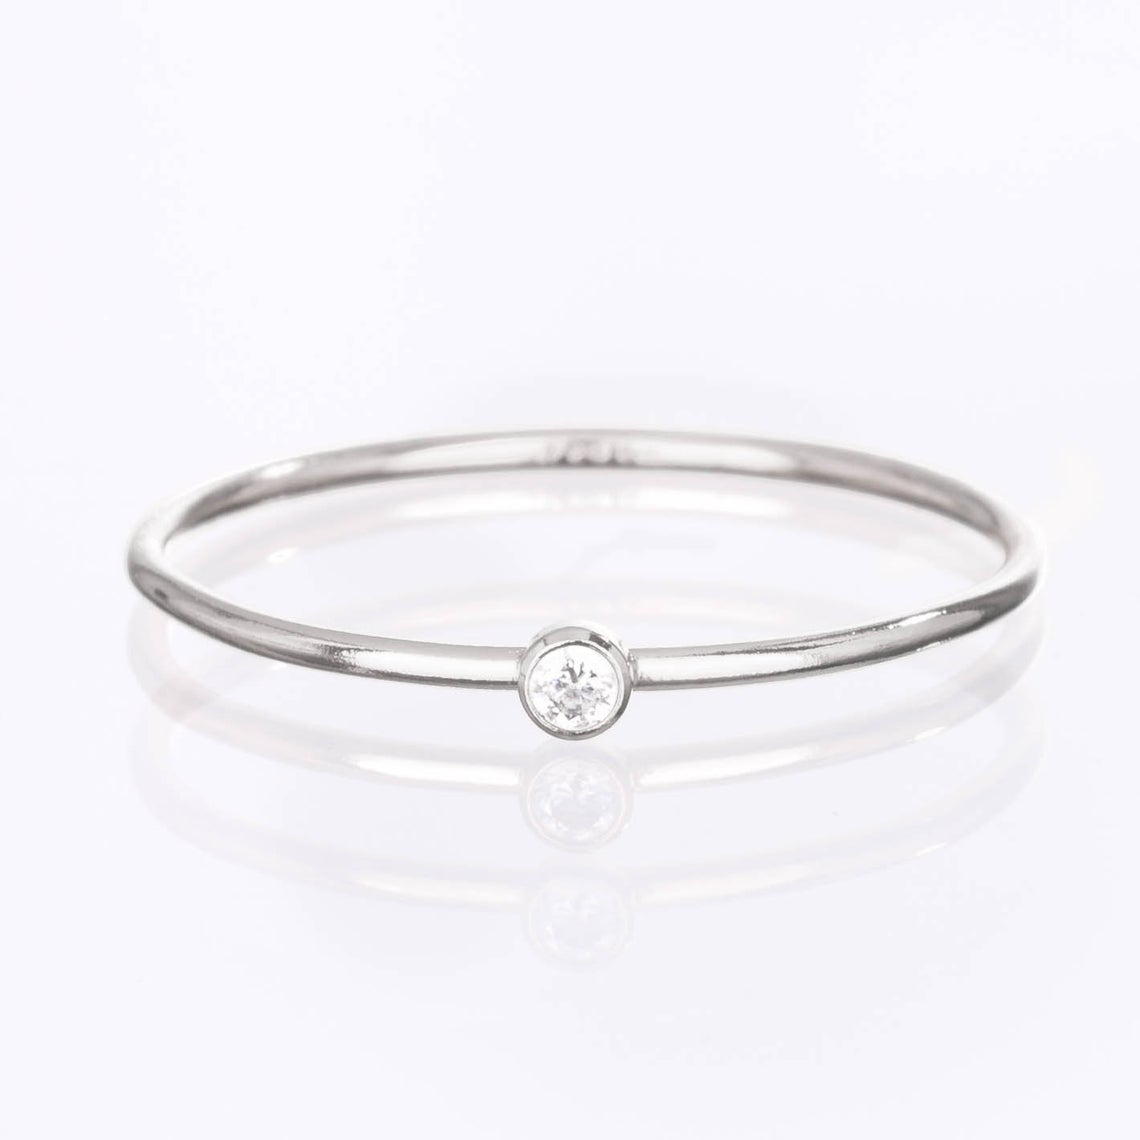 925 Sterling Silver Birthstone Ring